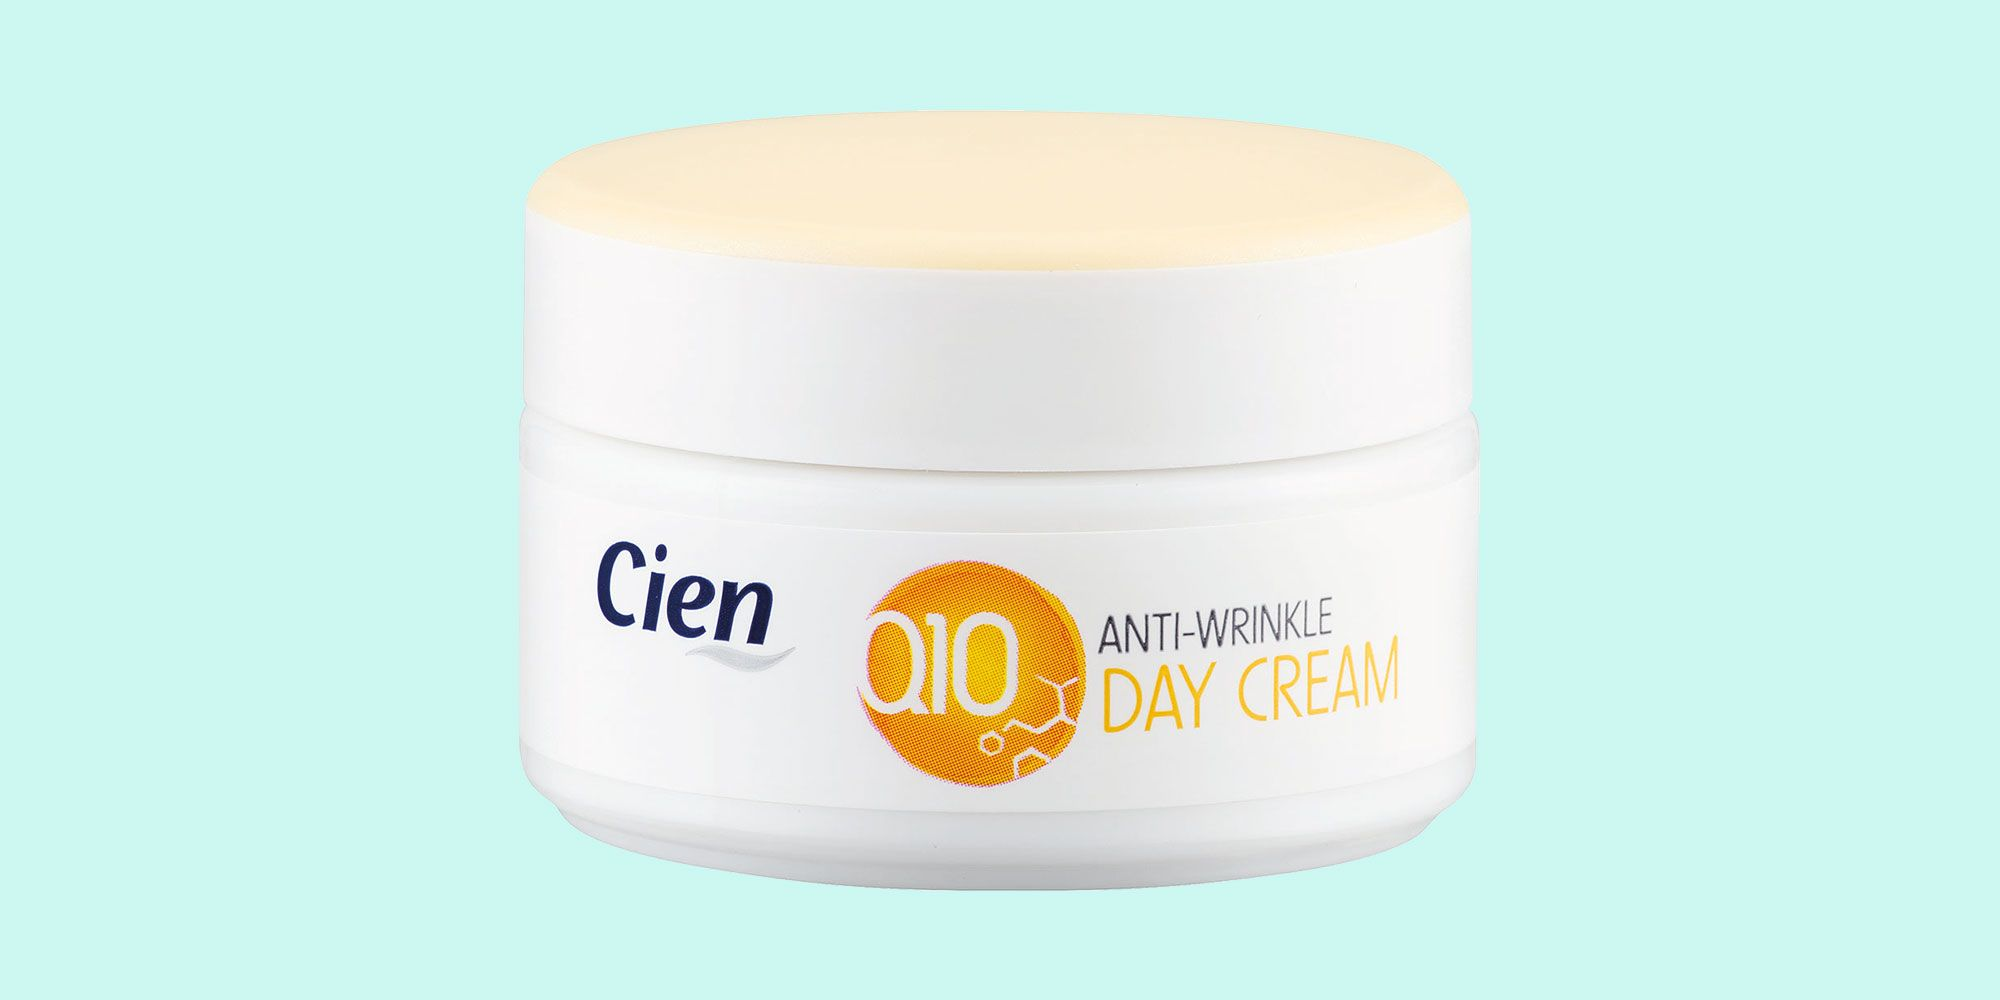 Lidl Cien Q10 Day Cream Review